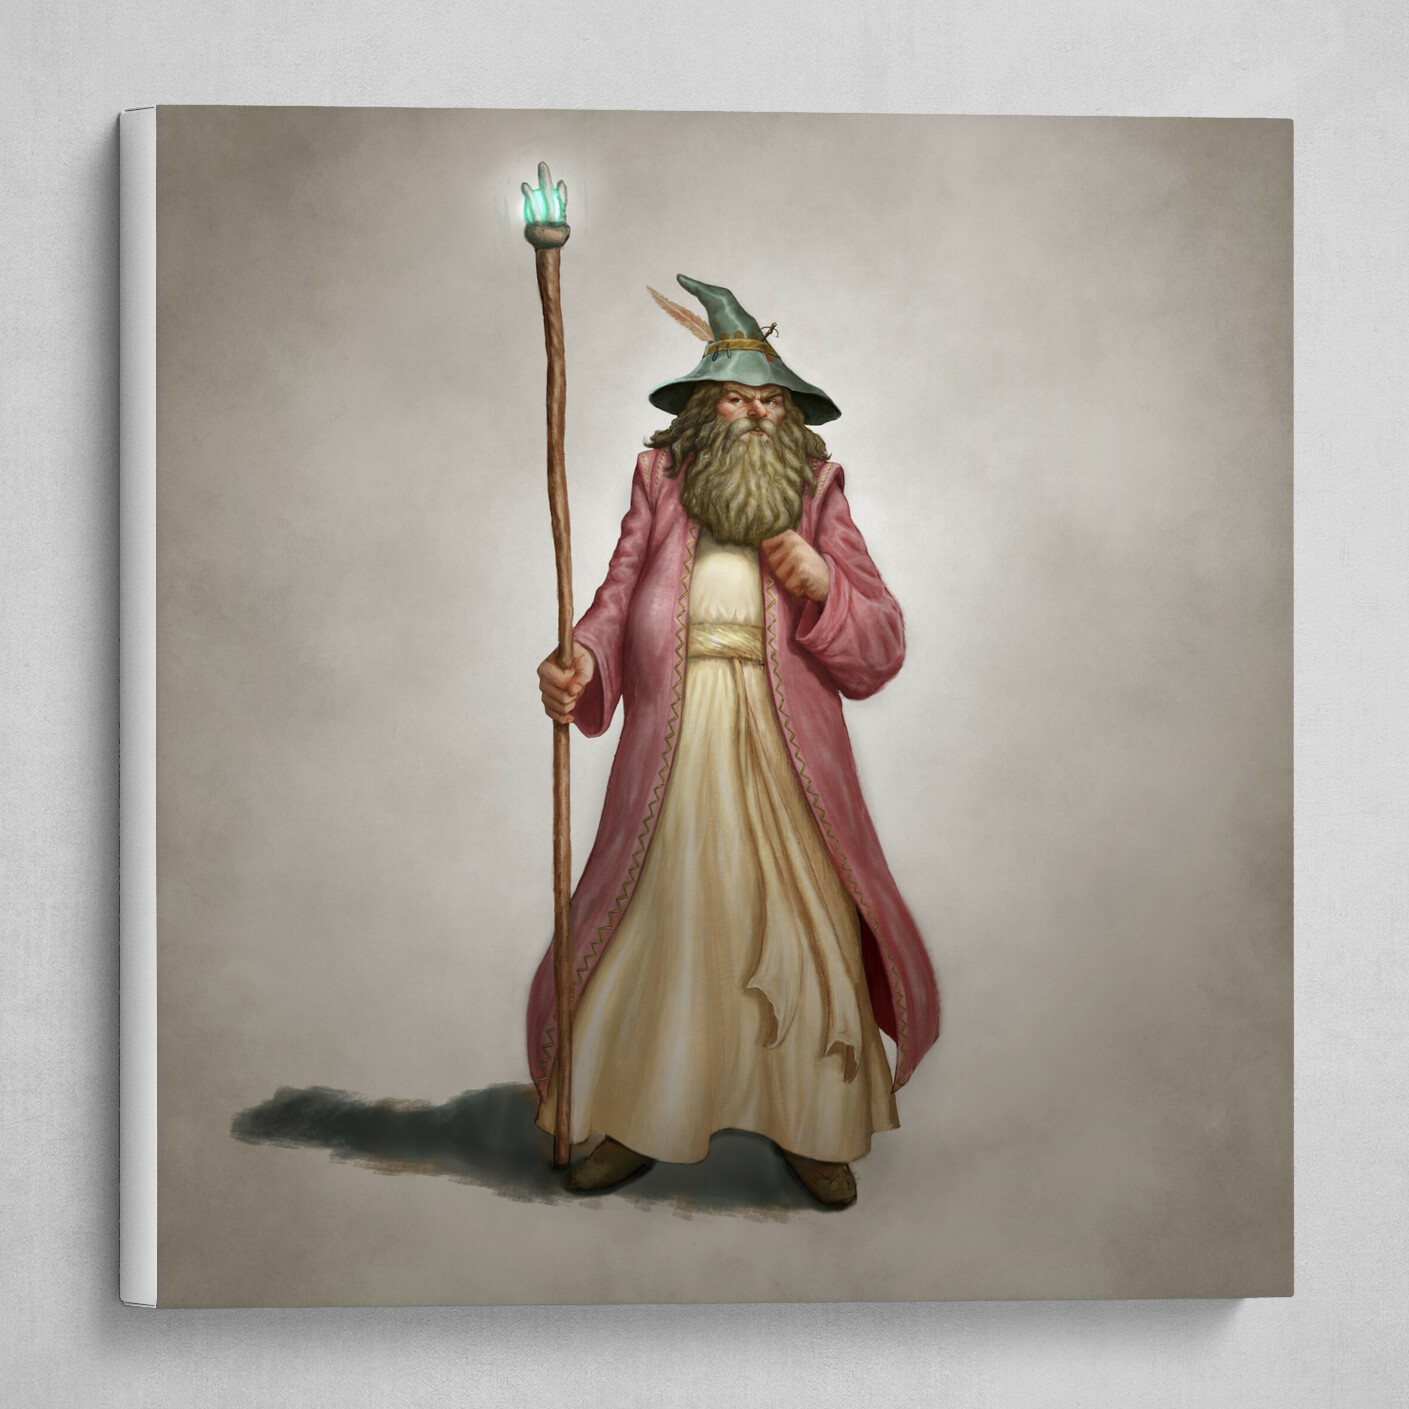 A Portrait of the Wizard as a Young Man